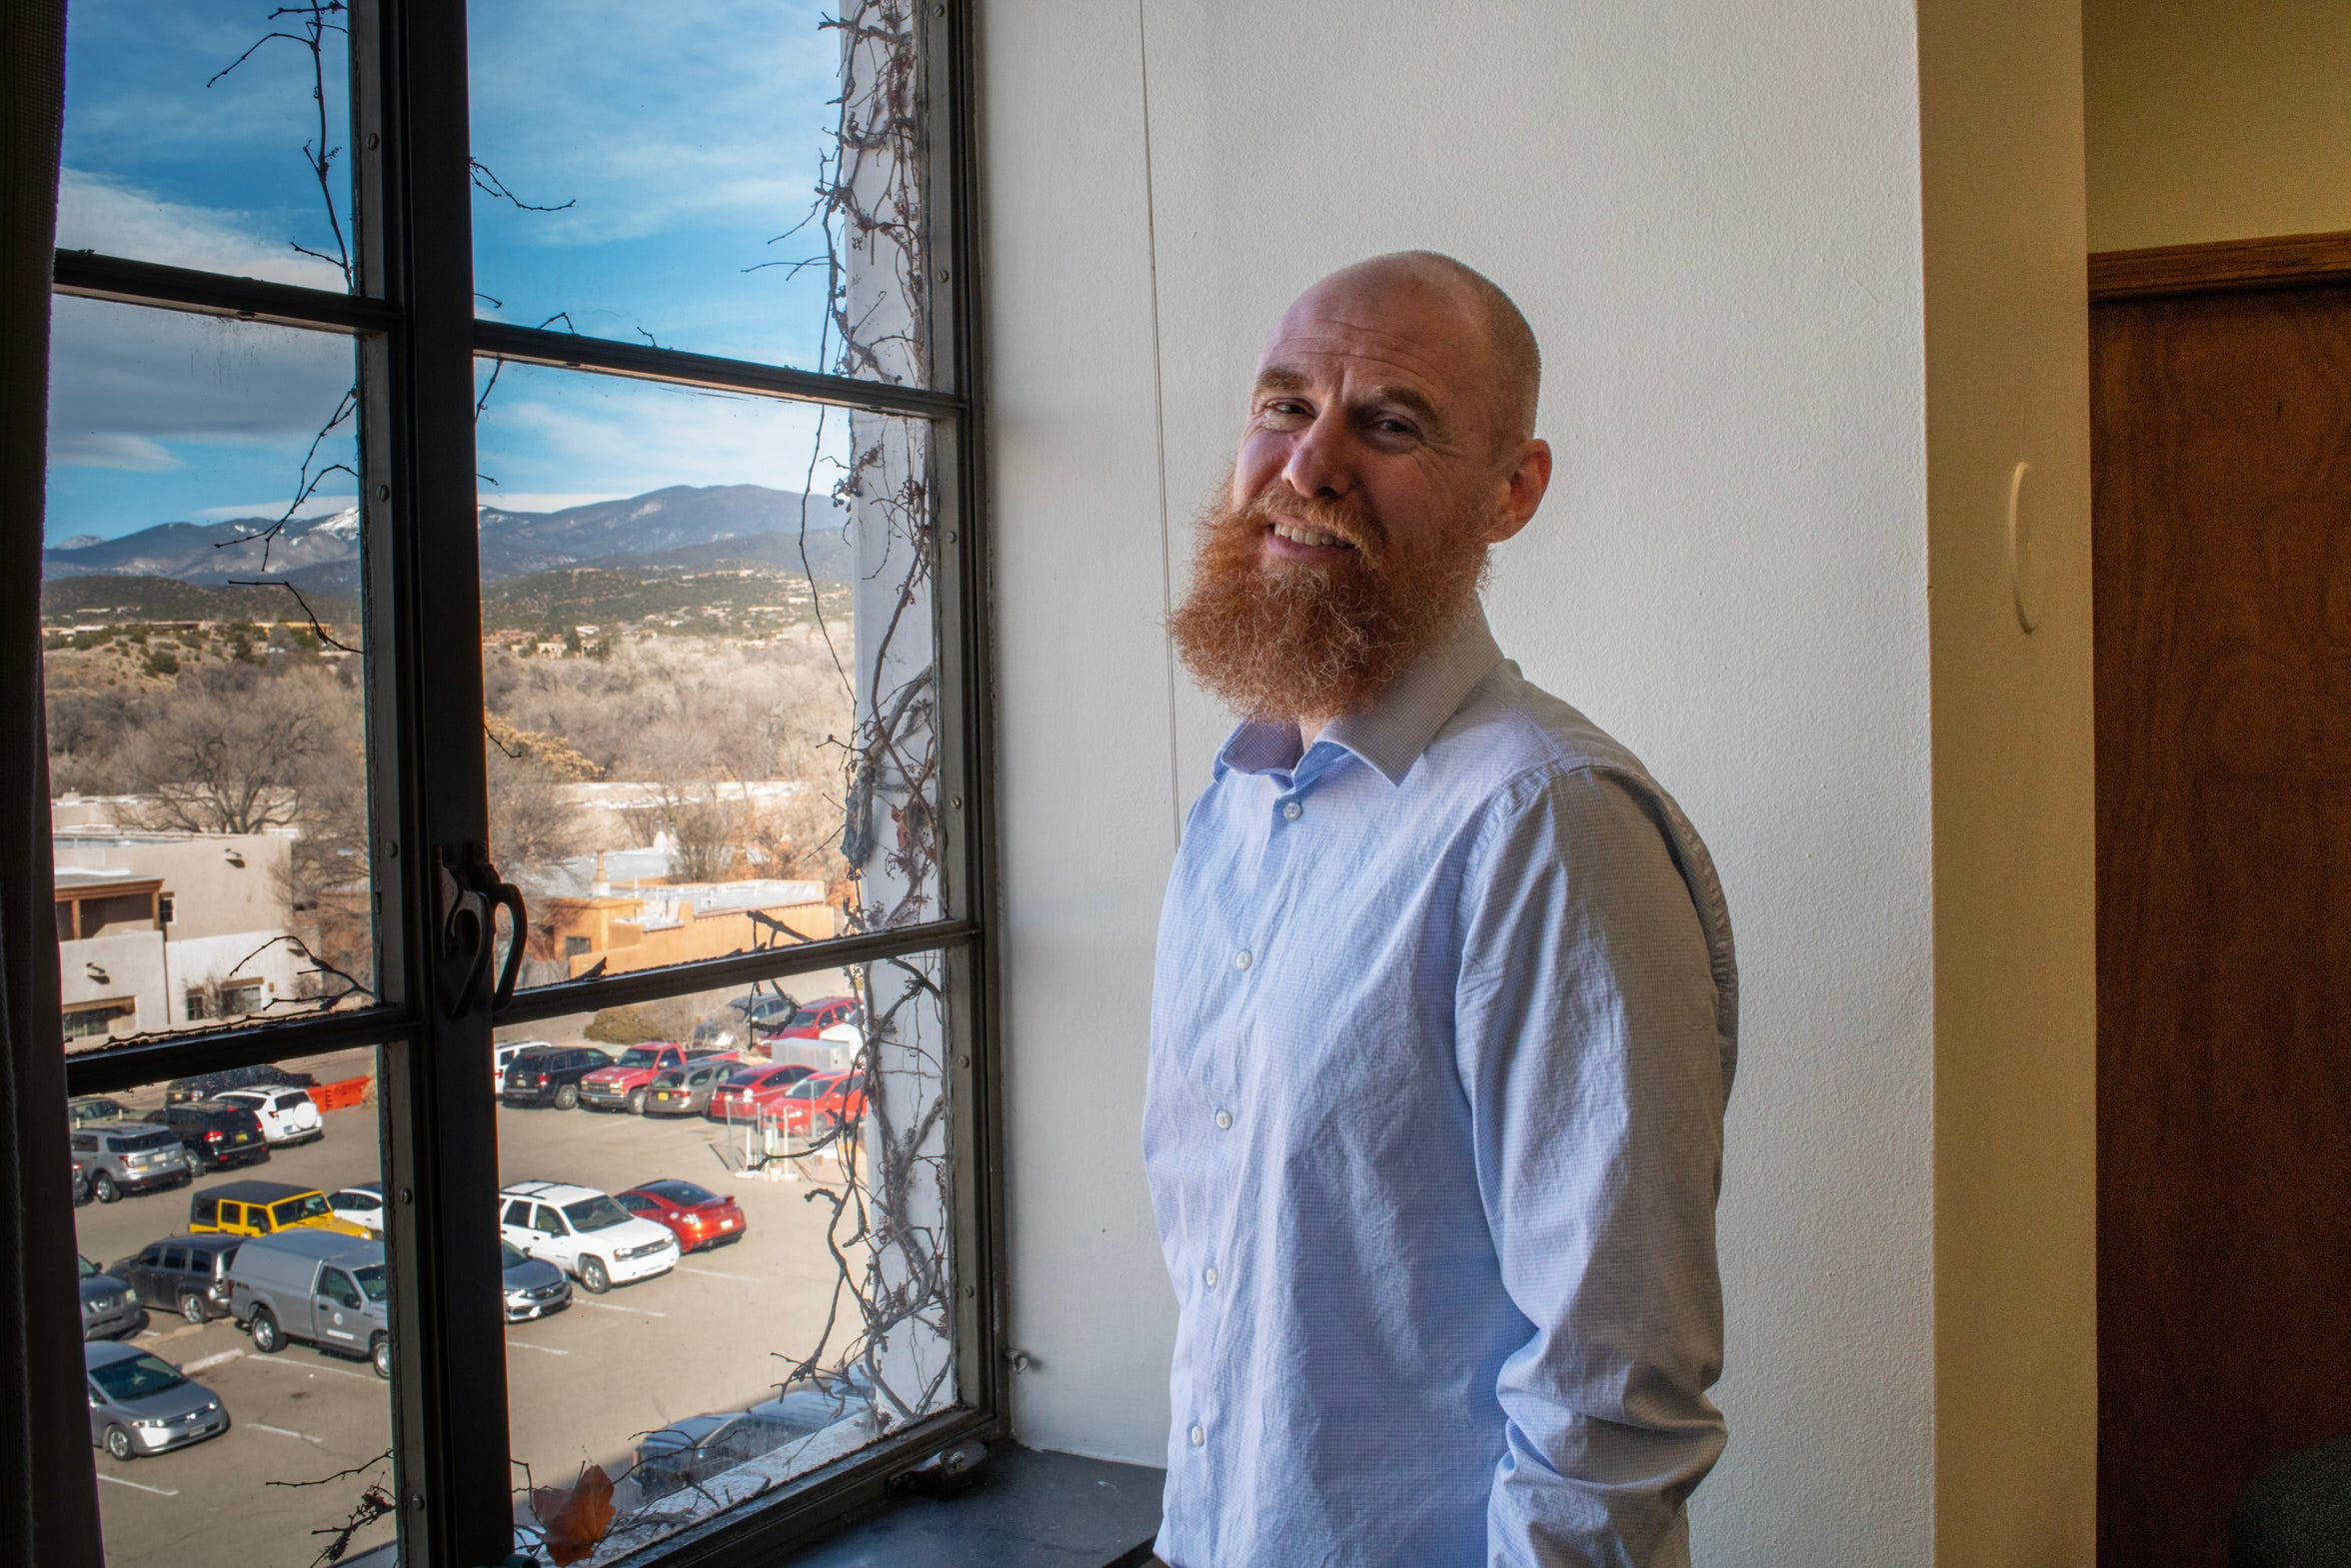 Brian Blalock, secretary of New Mexico's child-services agency, which reached an agreement last summer with the Albuquerque Police Department to work together to make child removal decisions.